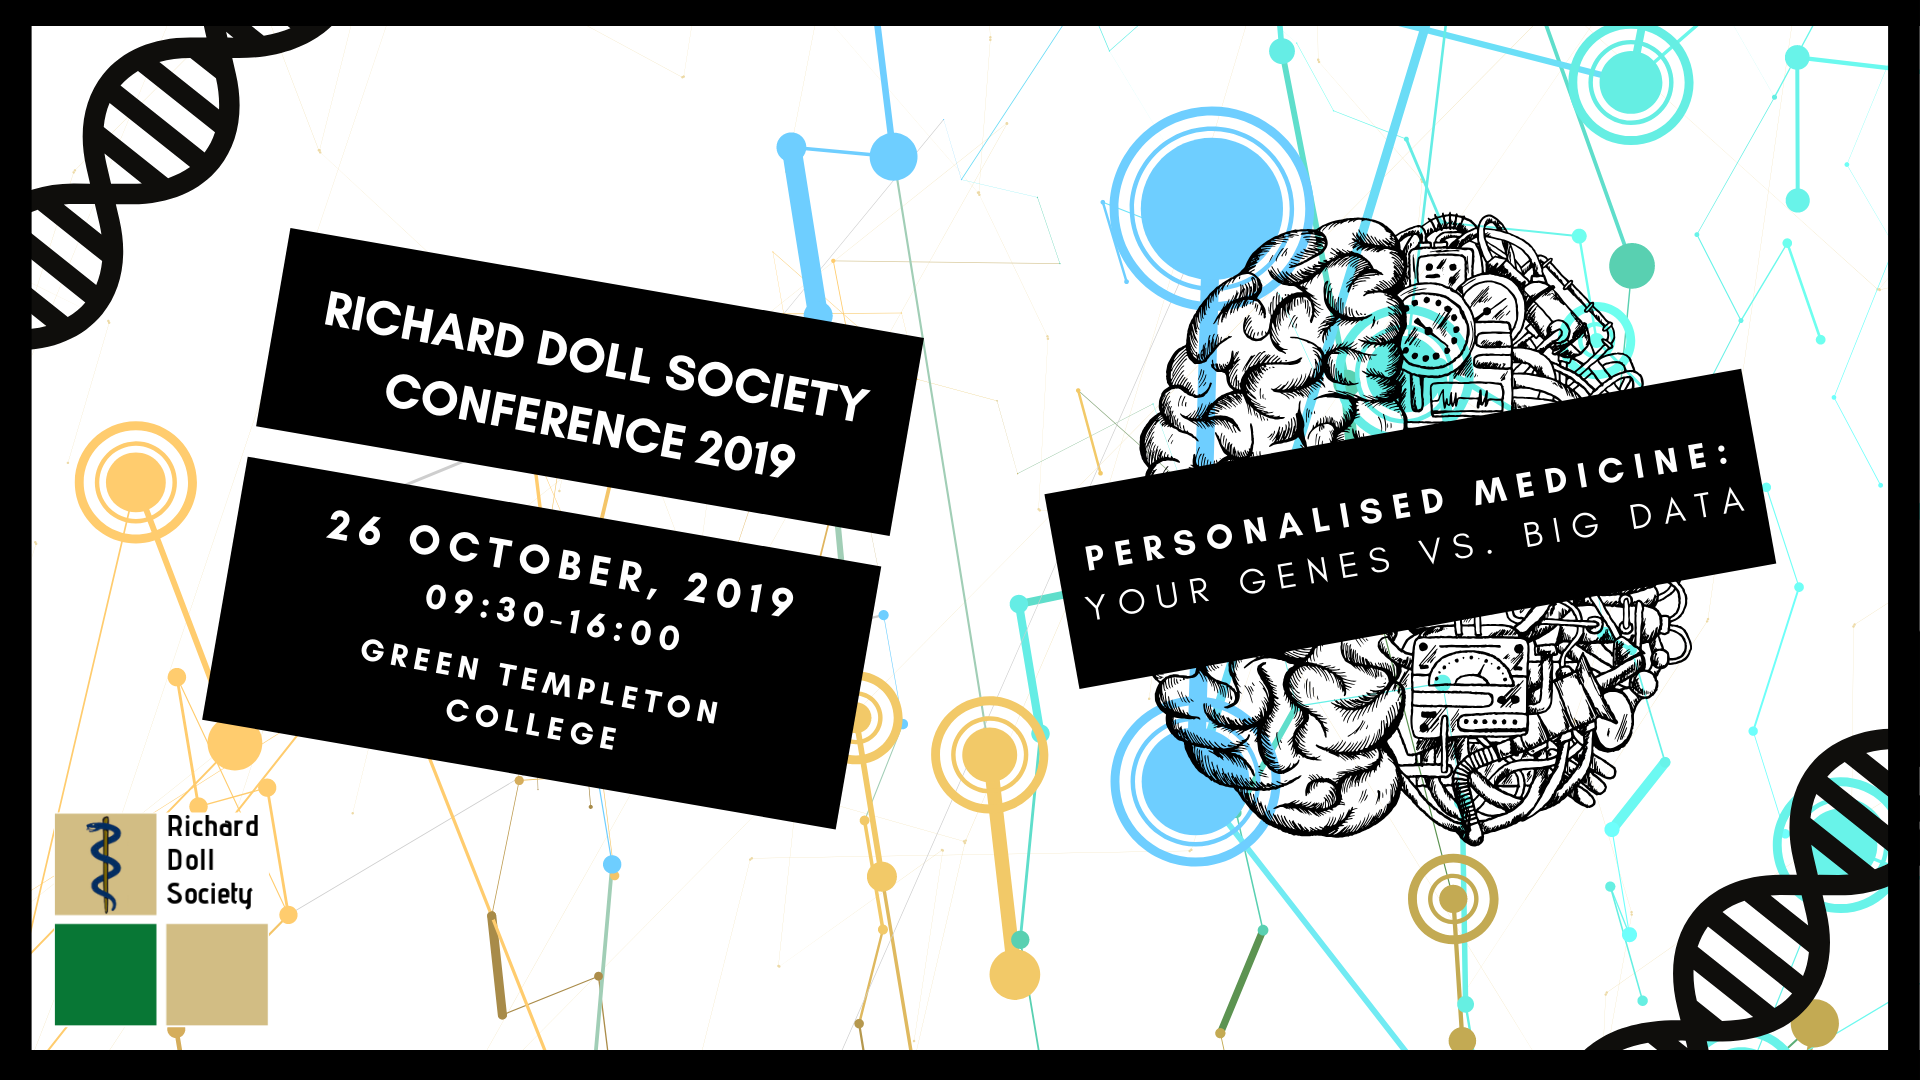 Richard Doll Society Conference 2019